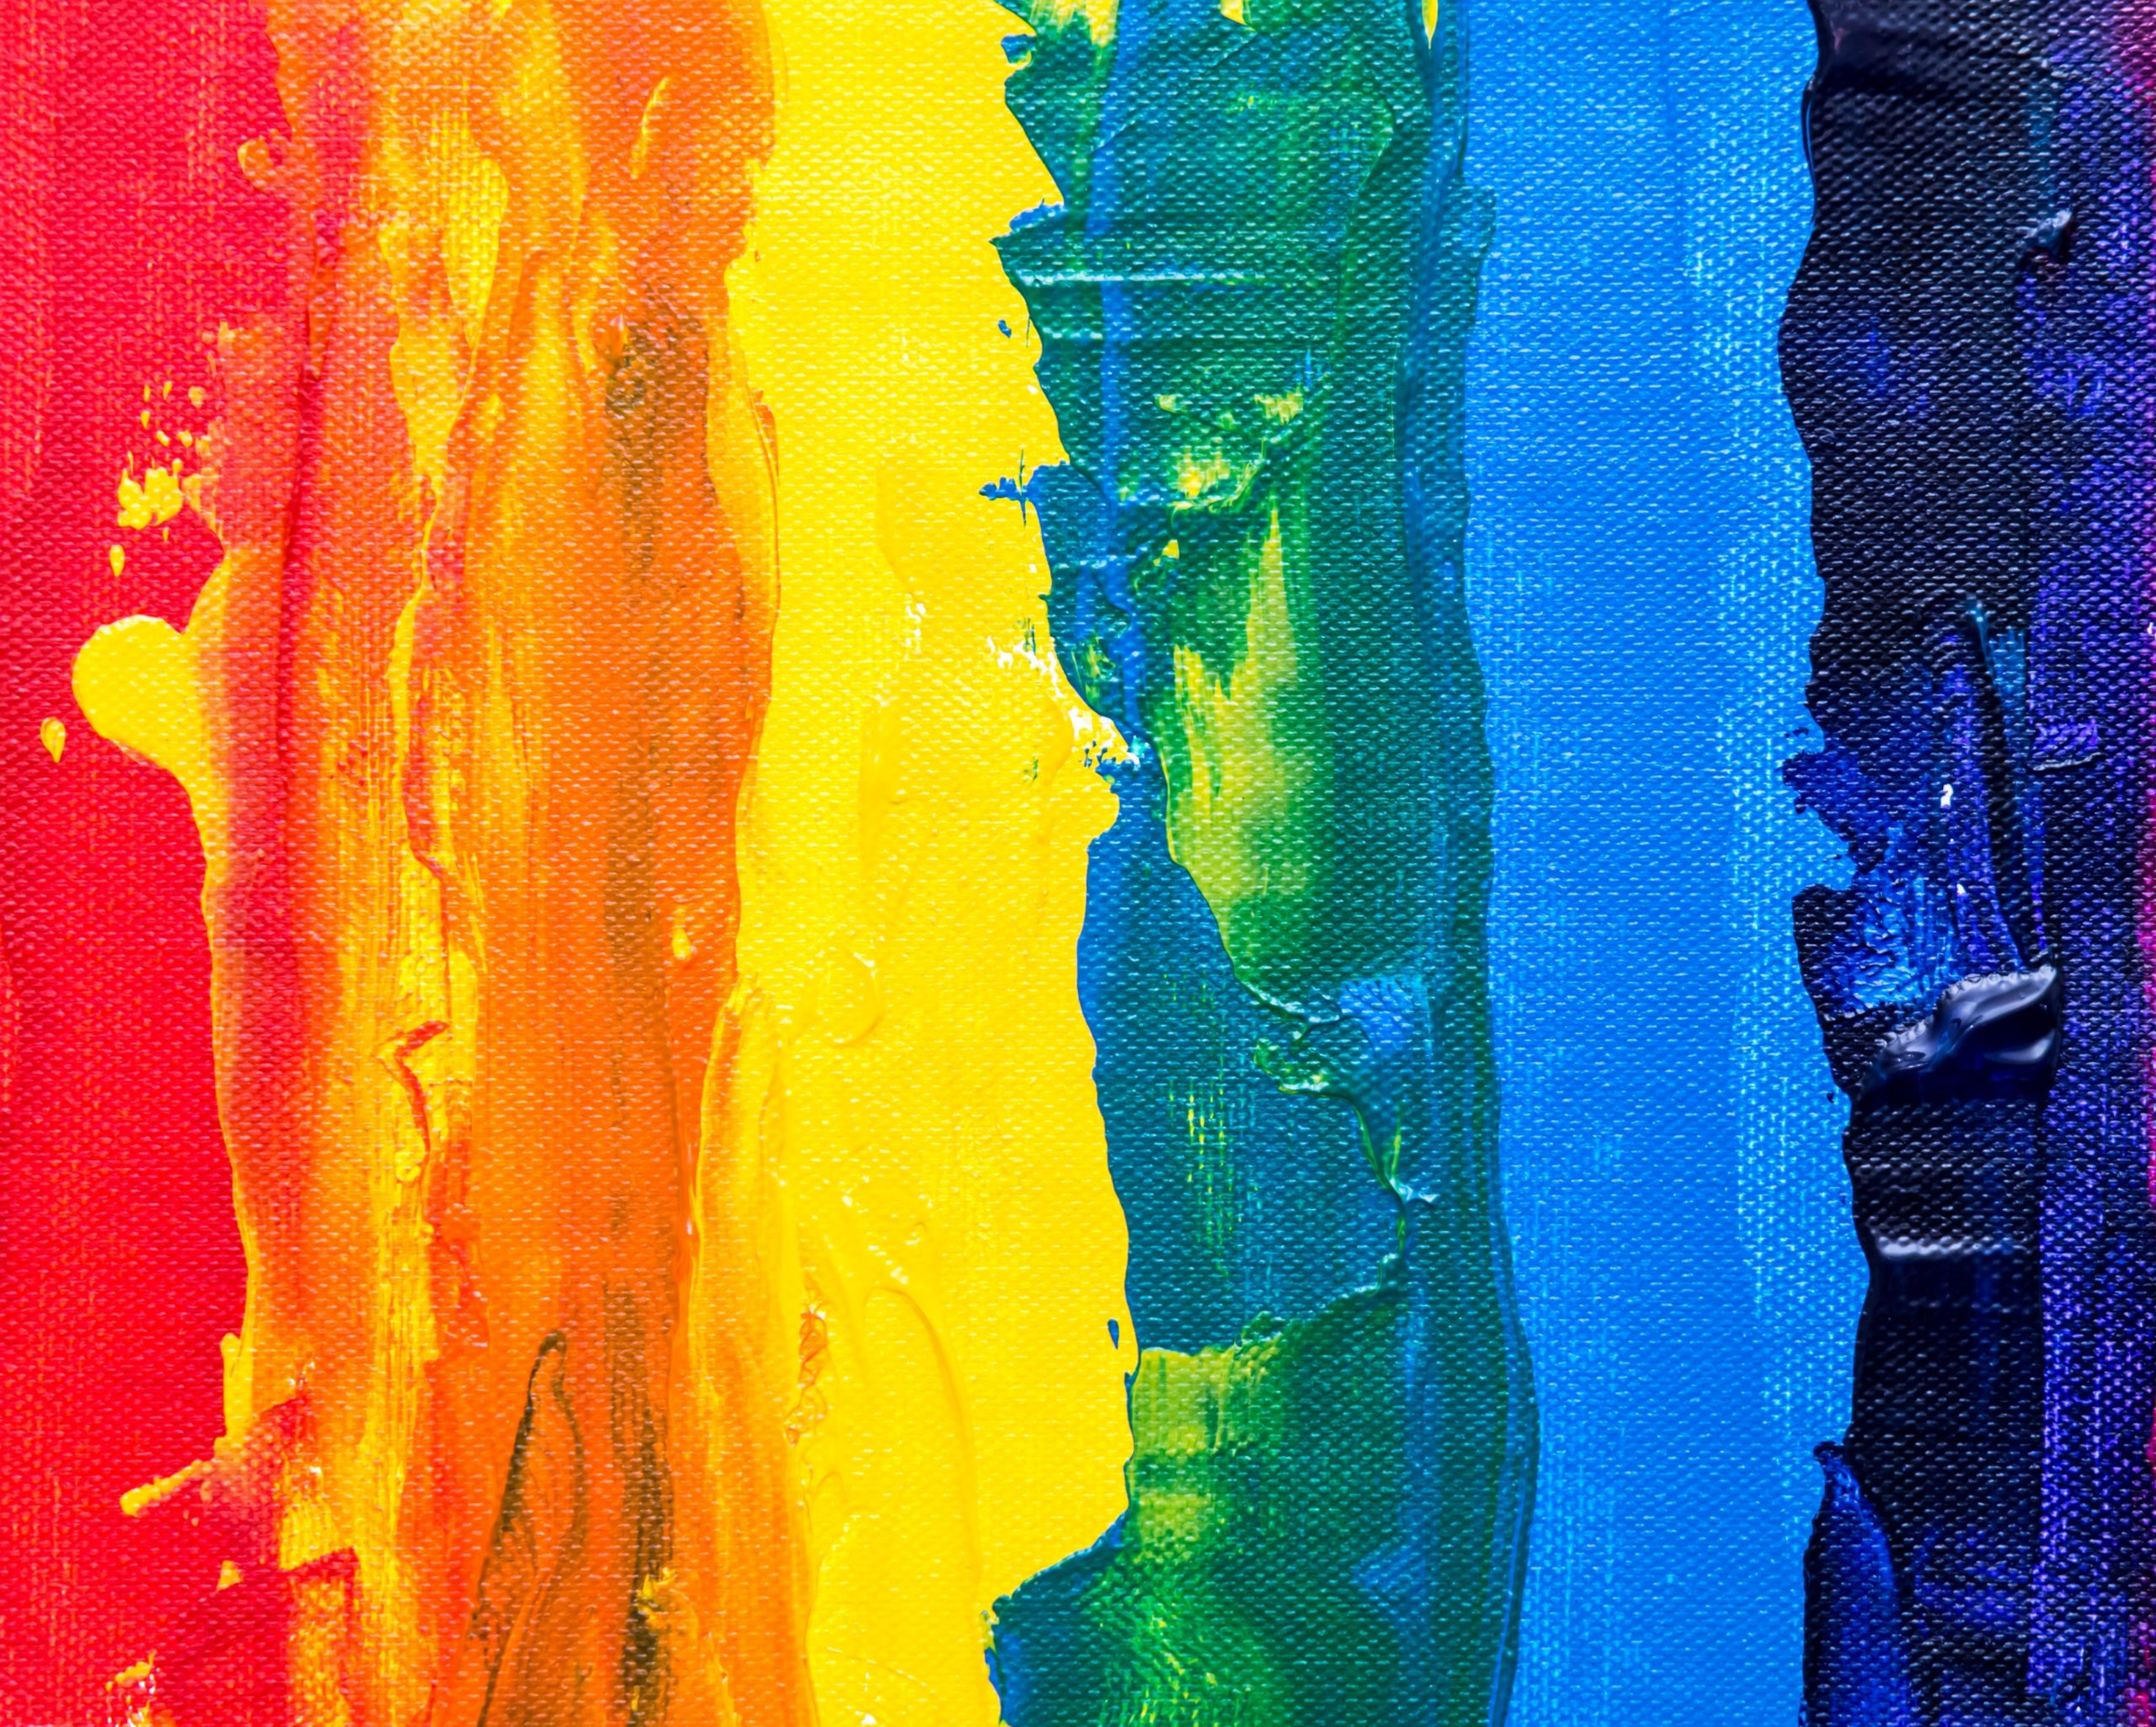 steve-johnson-rainbow painting edited to remove pink